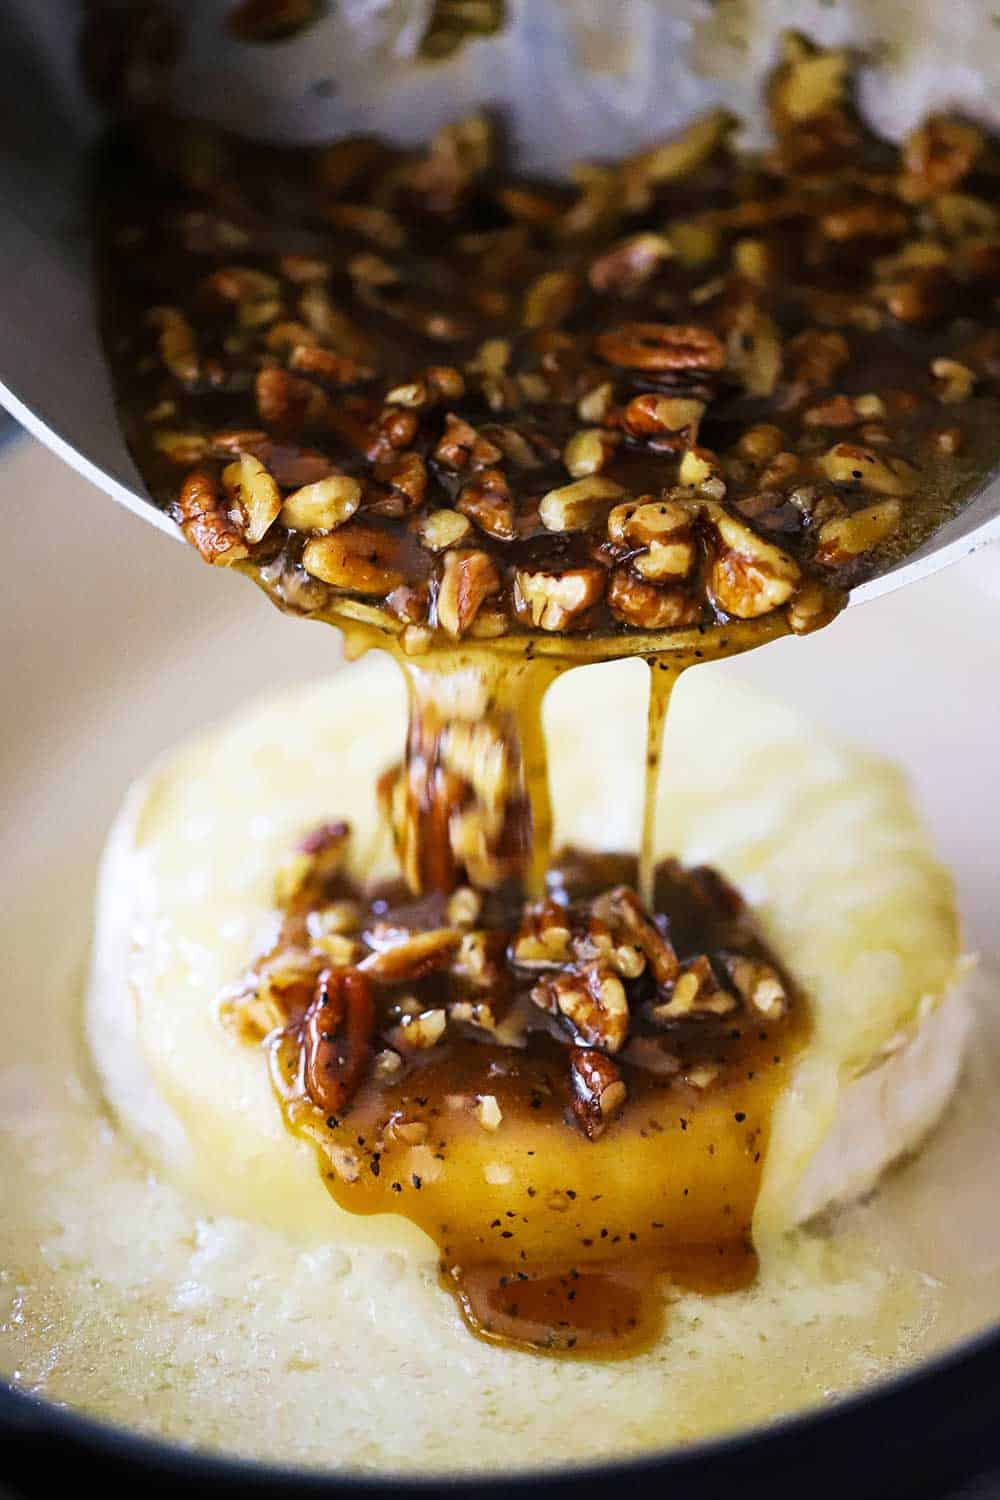 A medium-sized saucepan being used to pour a pecan praline sauce over baked brie.